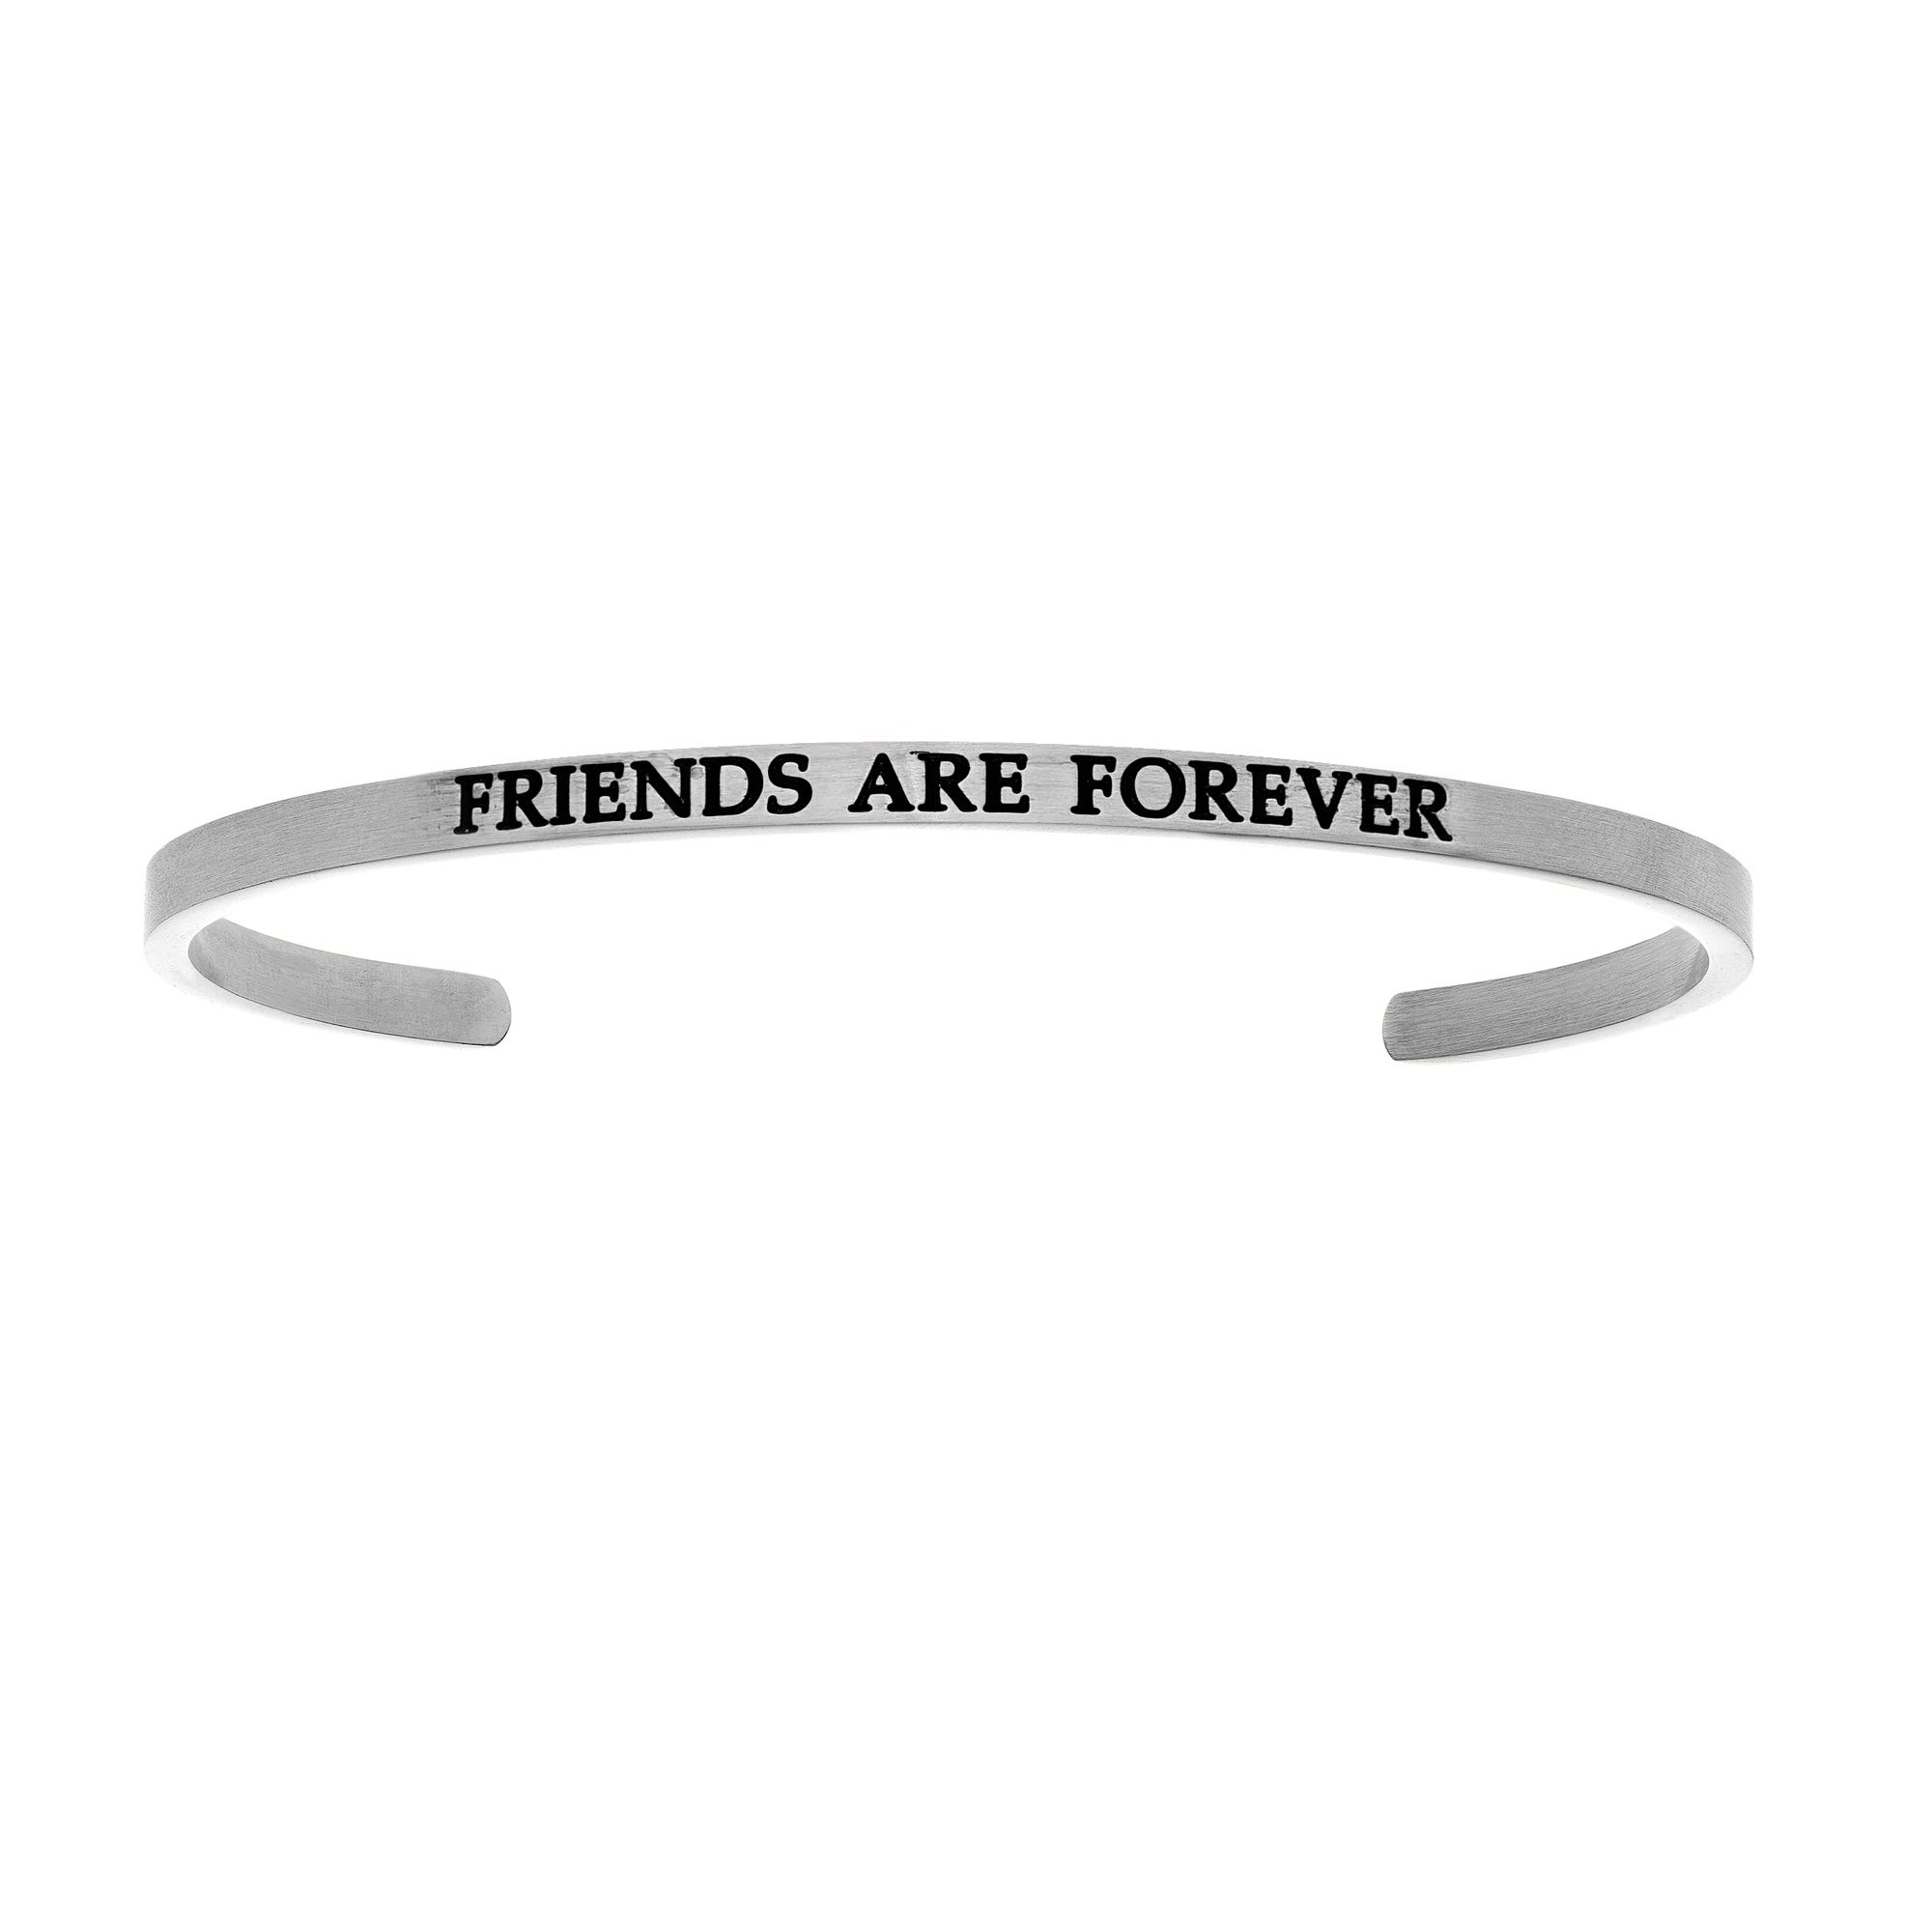 Friends Are Forever. Intuitions Cuff Bracelet in White Stainless Steel